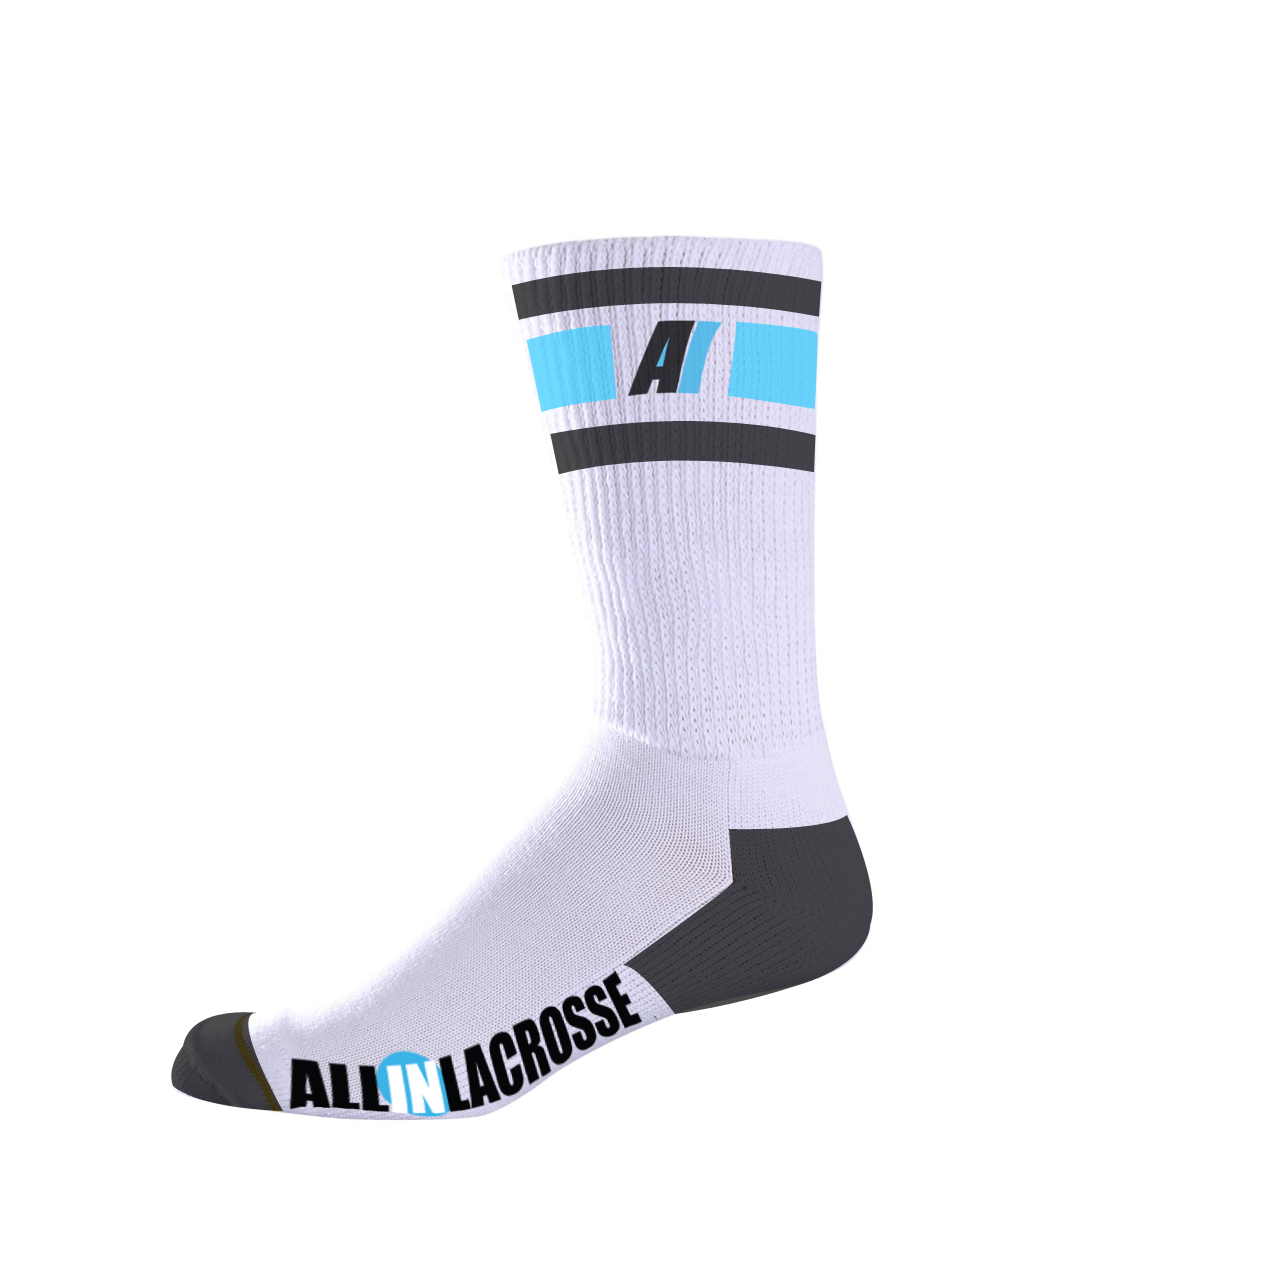 Sock Mock Up